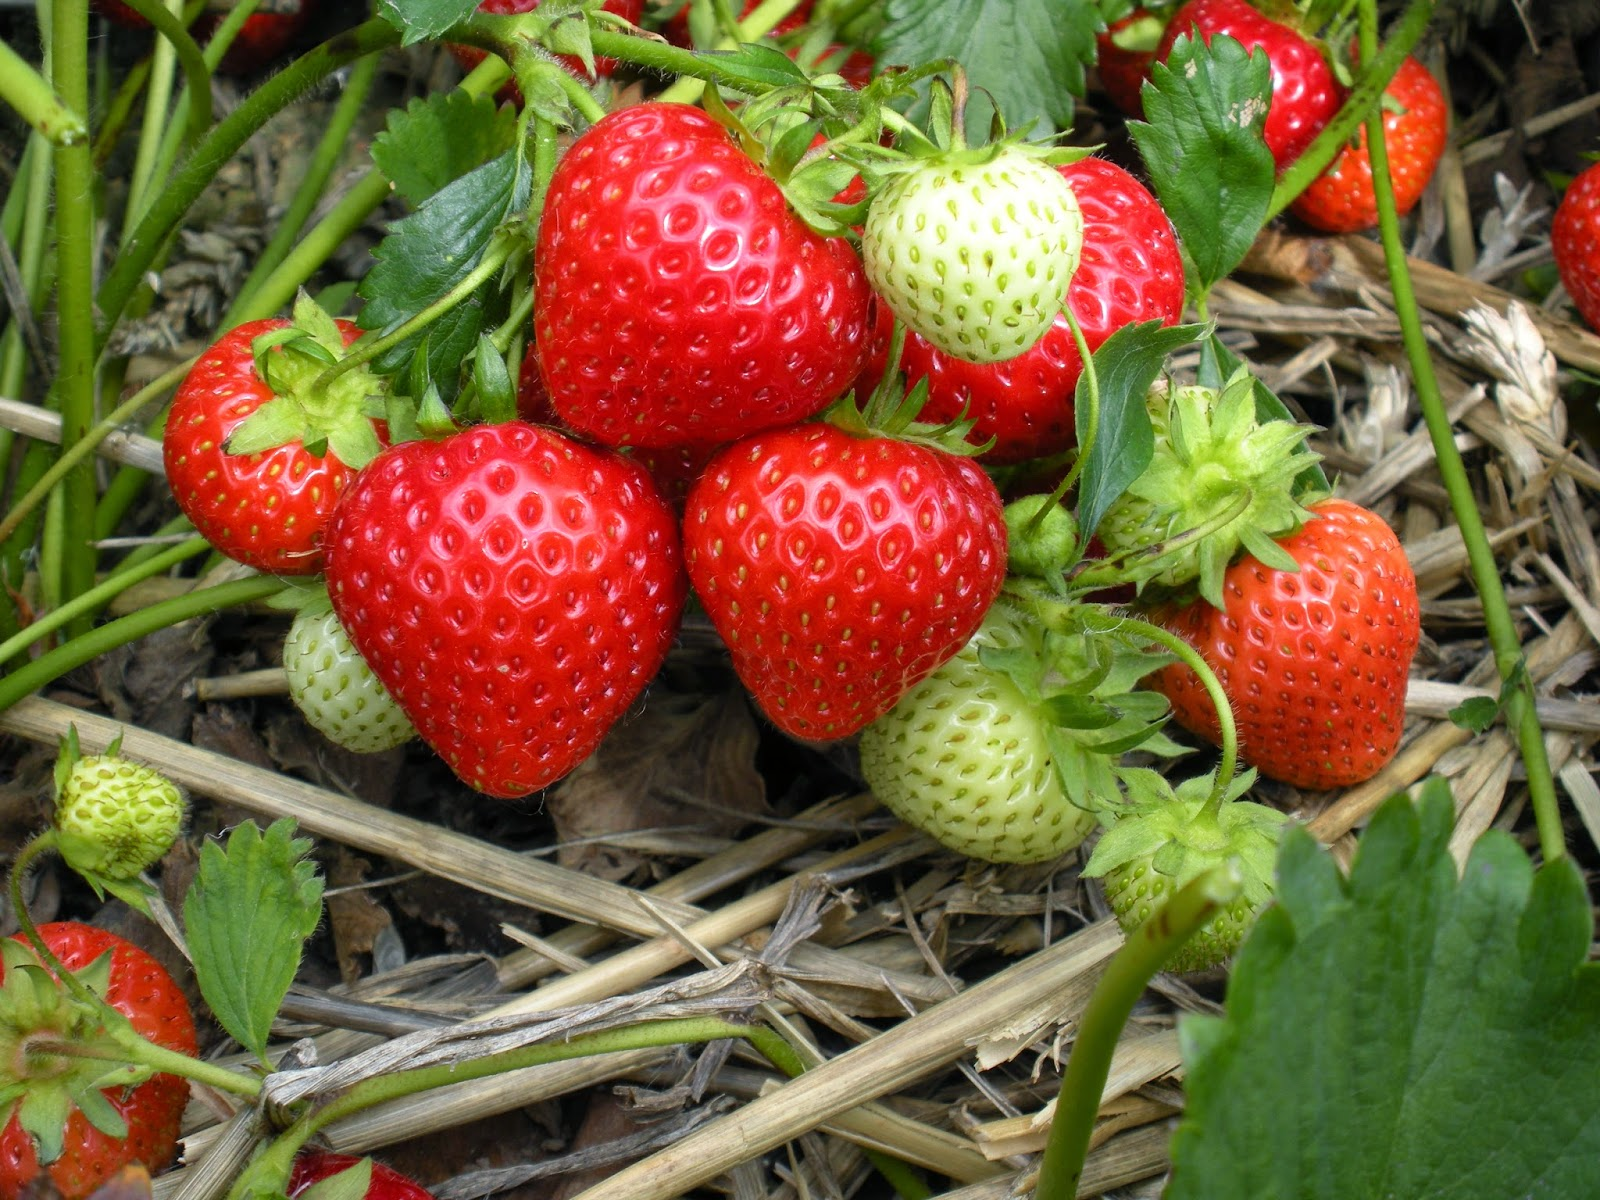 3Hr Grow Your Own Organic Strawberries Workshop | Gardens With Purpose